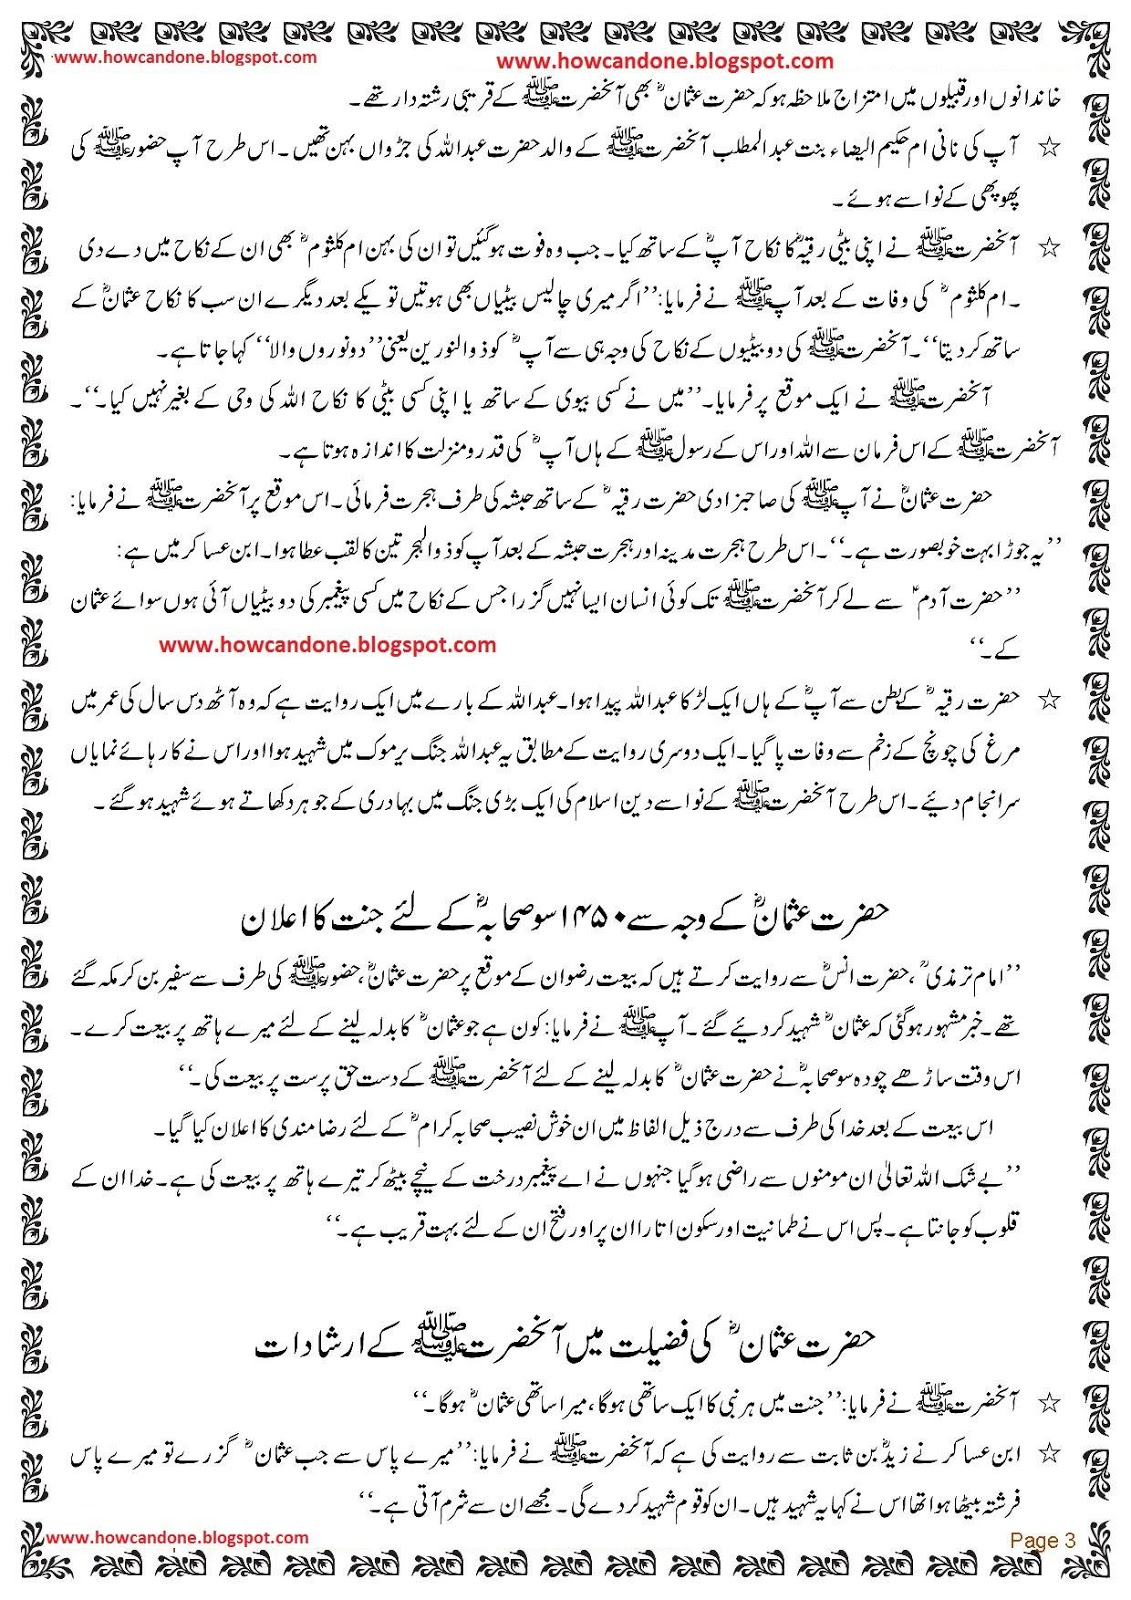 Life Of Hazrat Usman Ghani (R.A) In Urdu | HOW CAN DONE